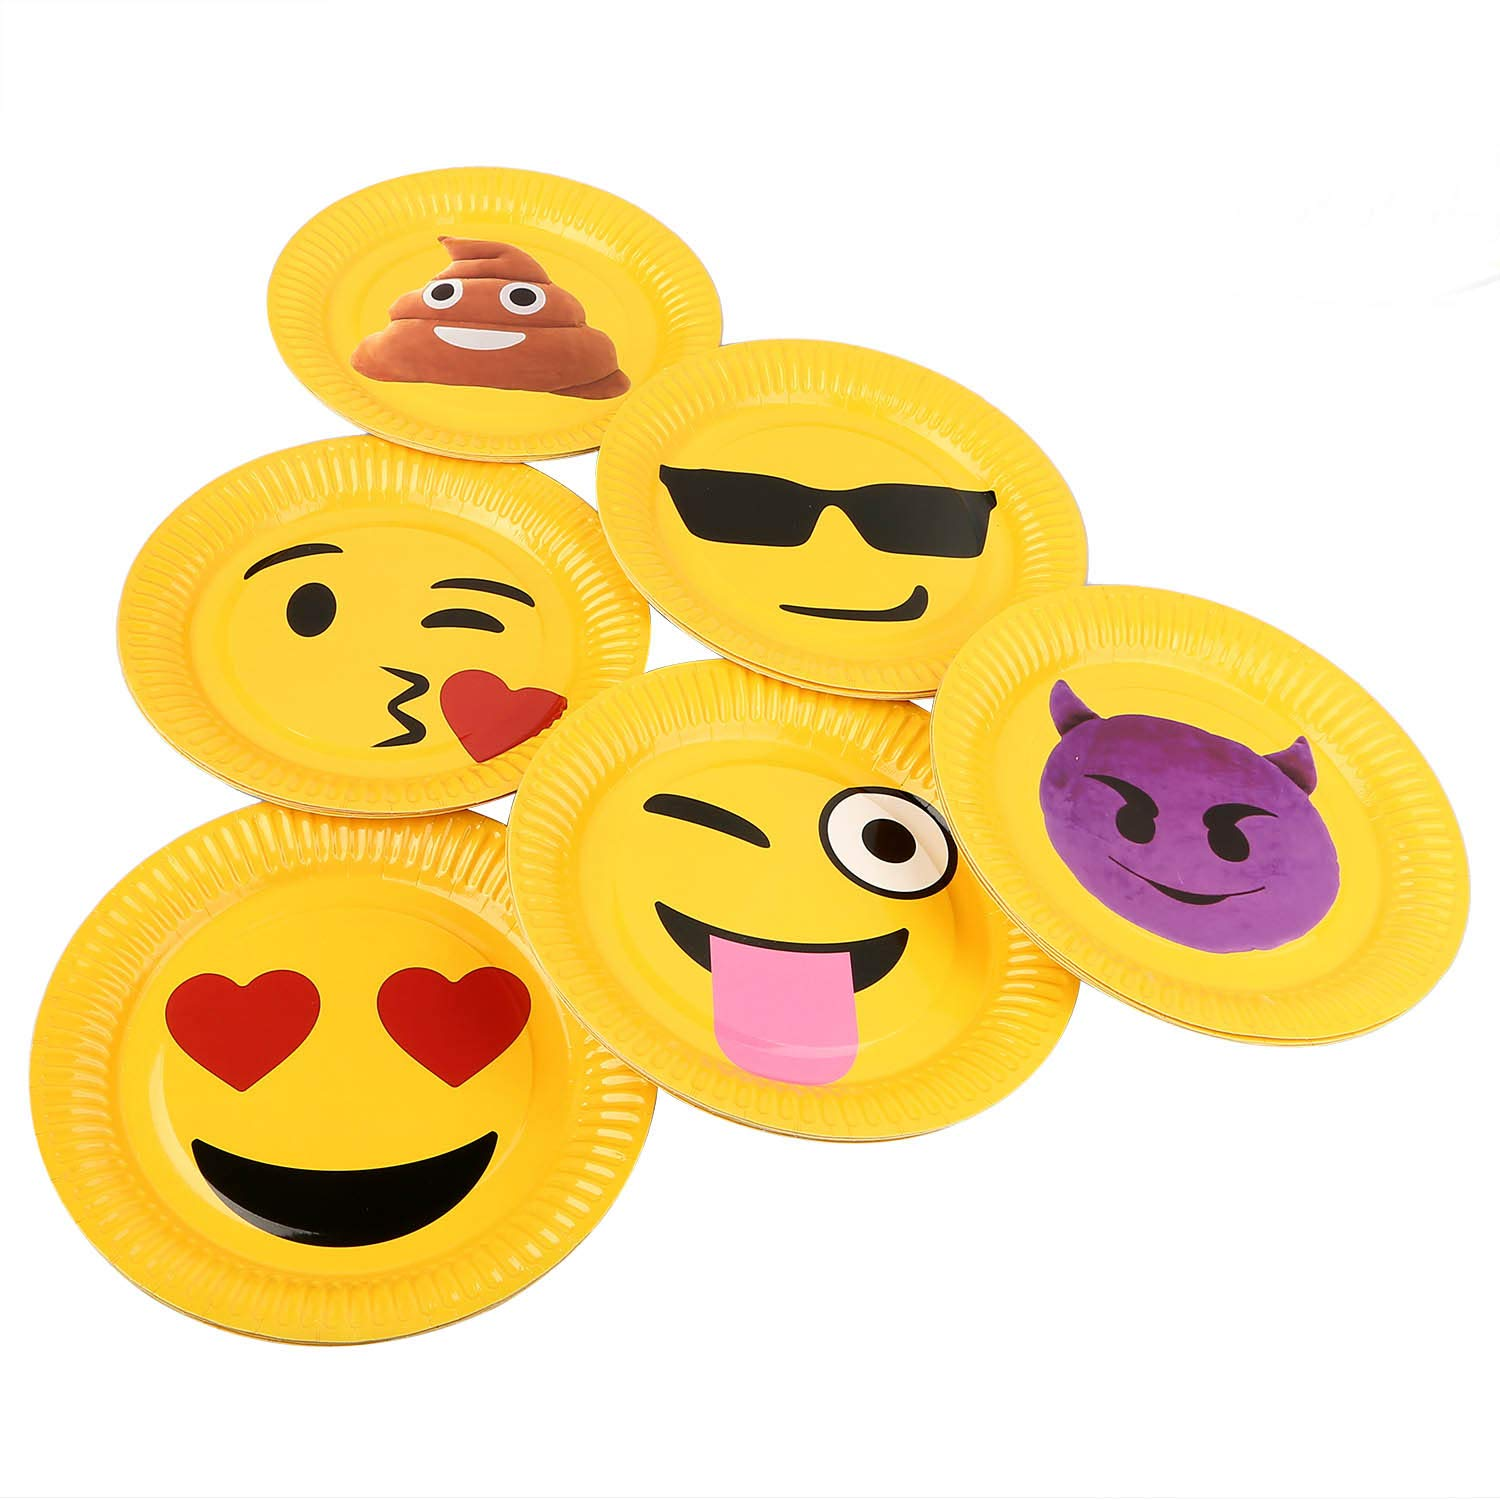 ritastar Disposable Party Dinner Paper Plates 9 inch Funny Emoji Smiley  Face Decorations Birthday Holiday Christmas Wedding Family Gathering (30pcs)